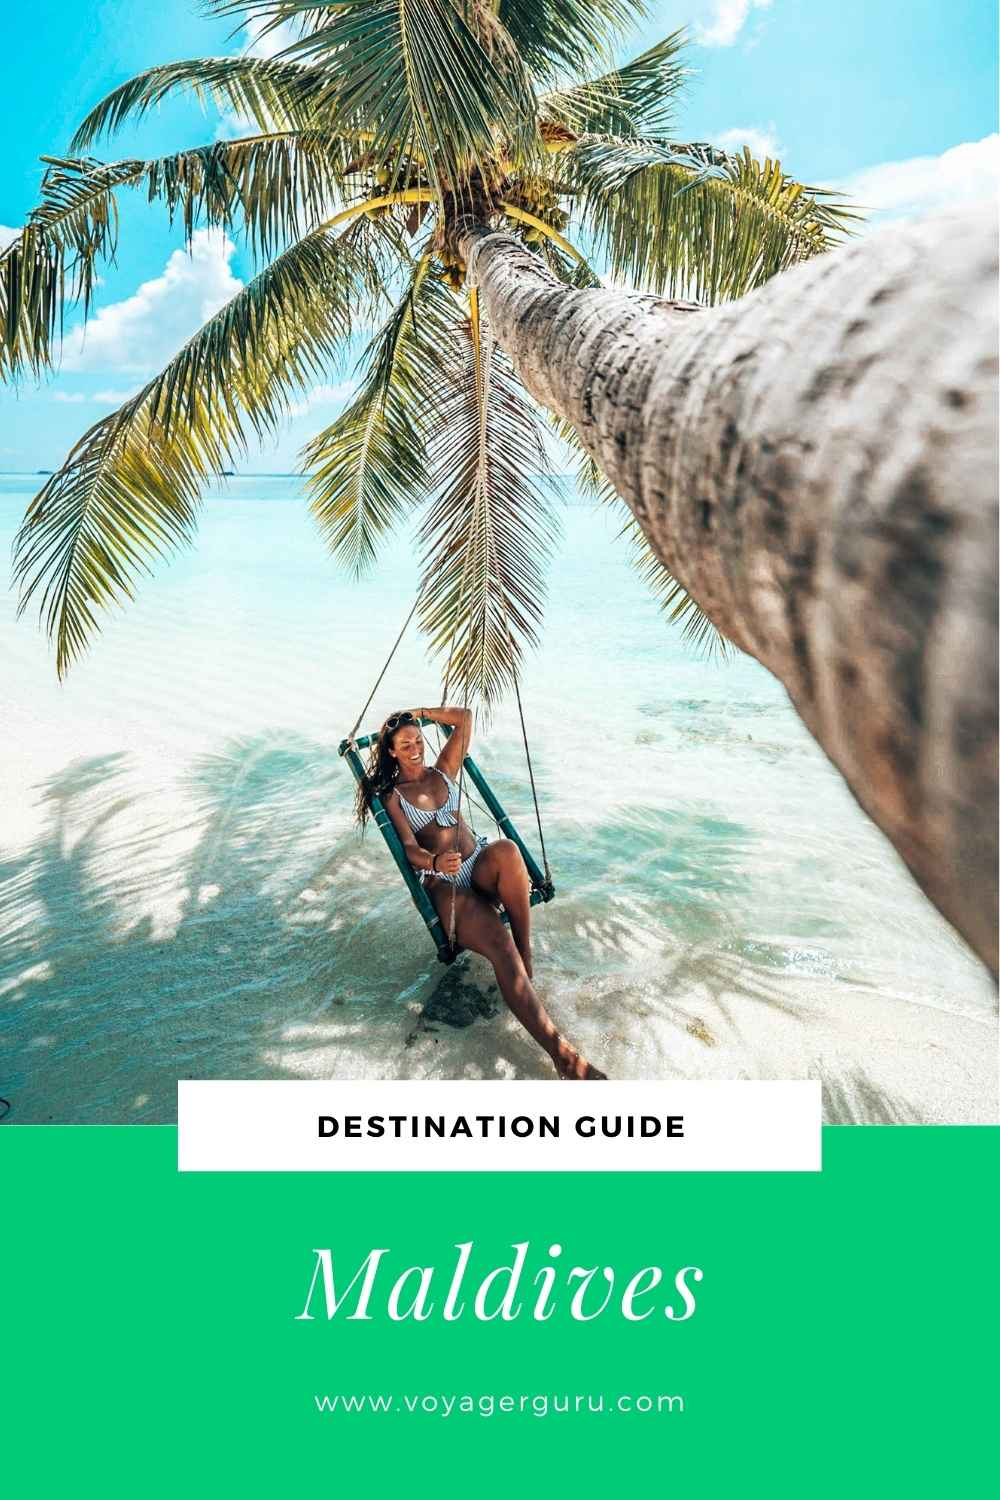 maldives destination guide pin 7